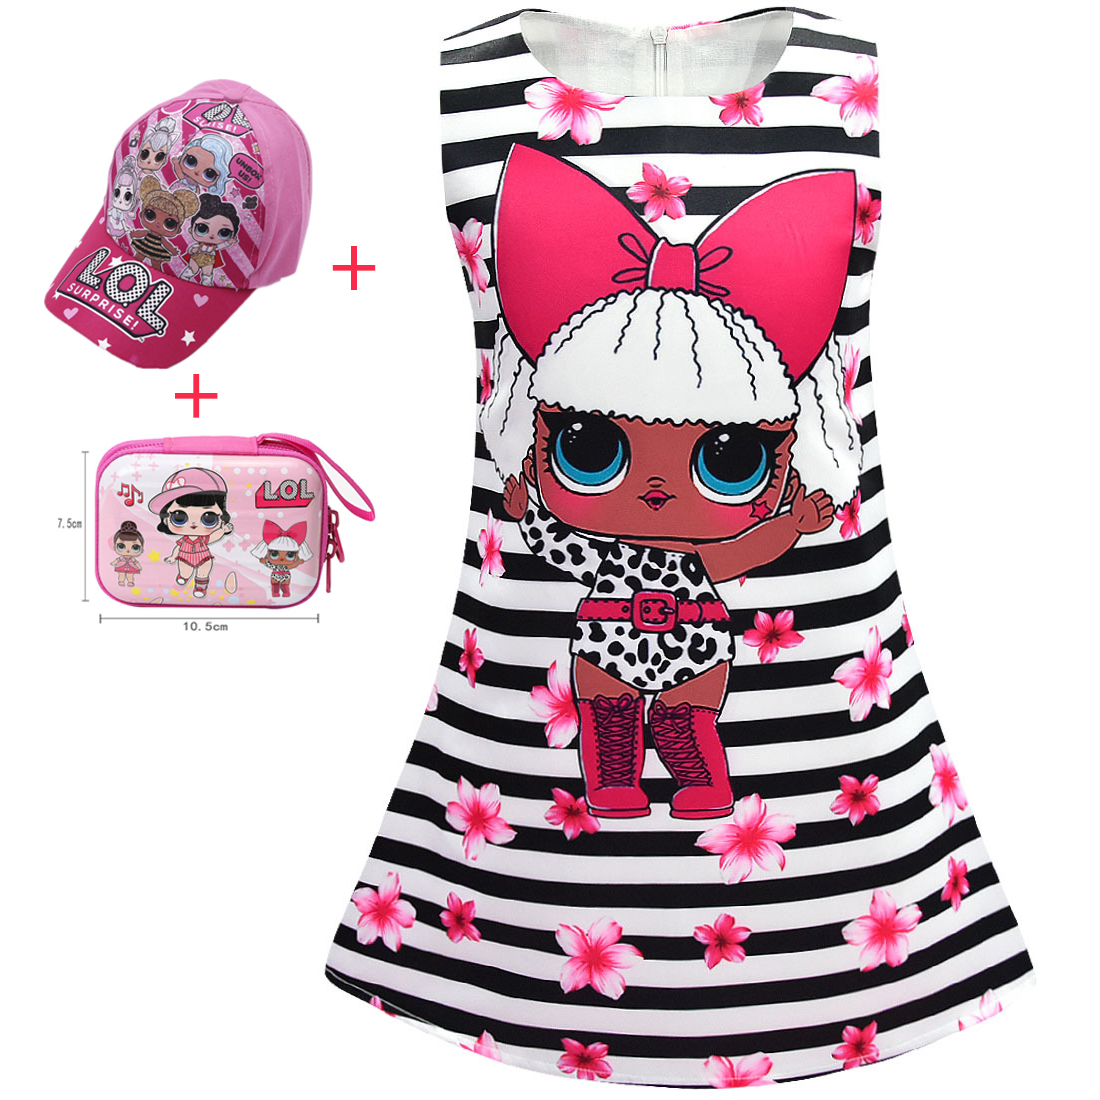 Kids Dresses For Girls Summer Cartoon Lol Dress Birthday Party Princess Dresses Toddler Baby Sleeveless Vestidos Dolls Clothes